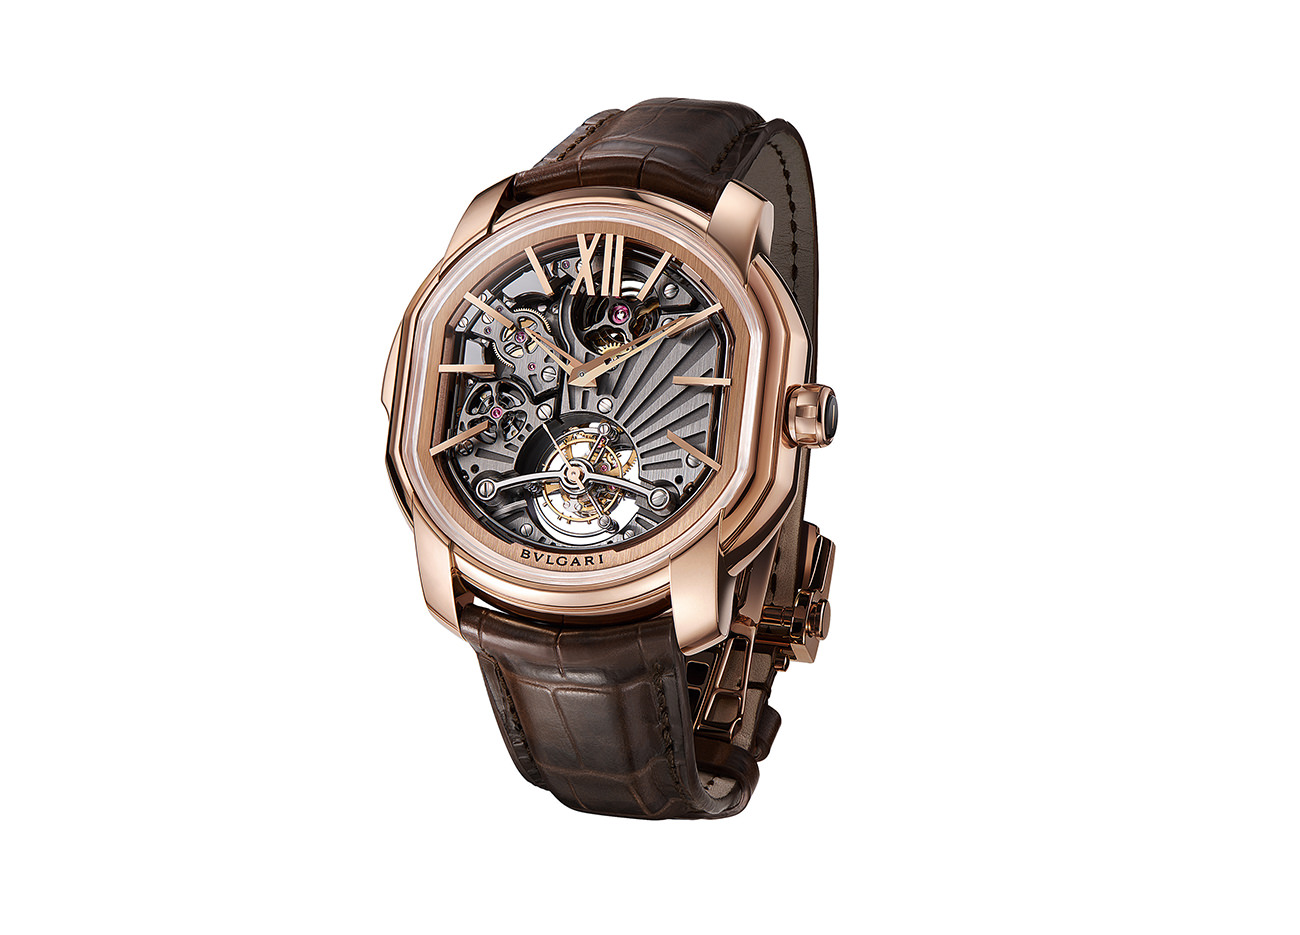 Bulgari-Carillon-Tourbillon-7